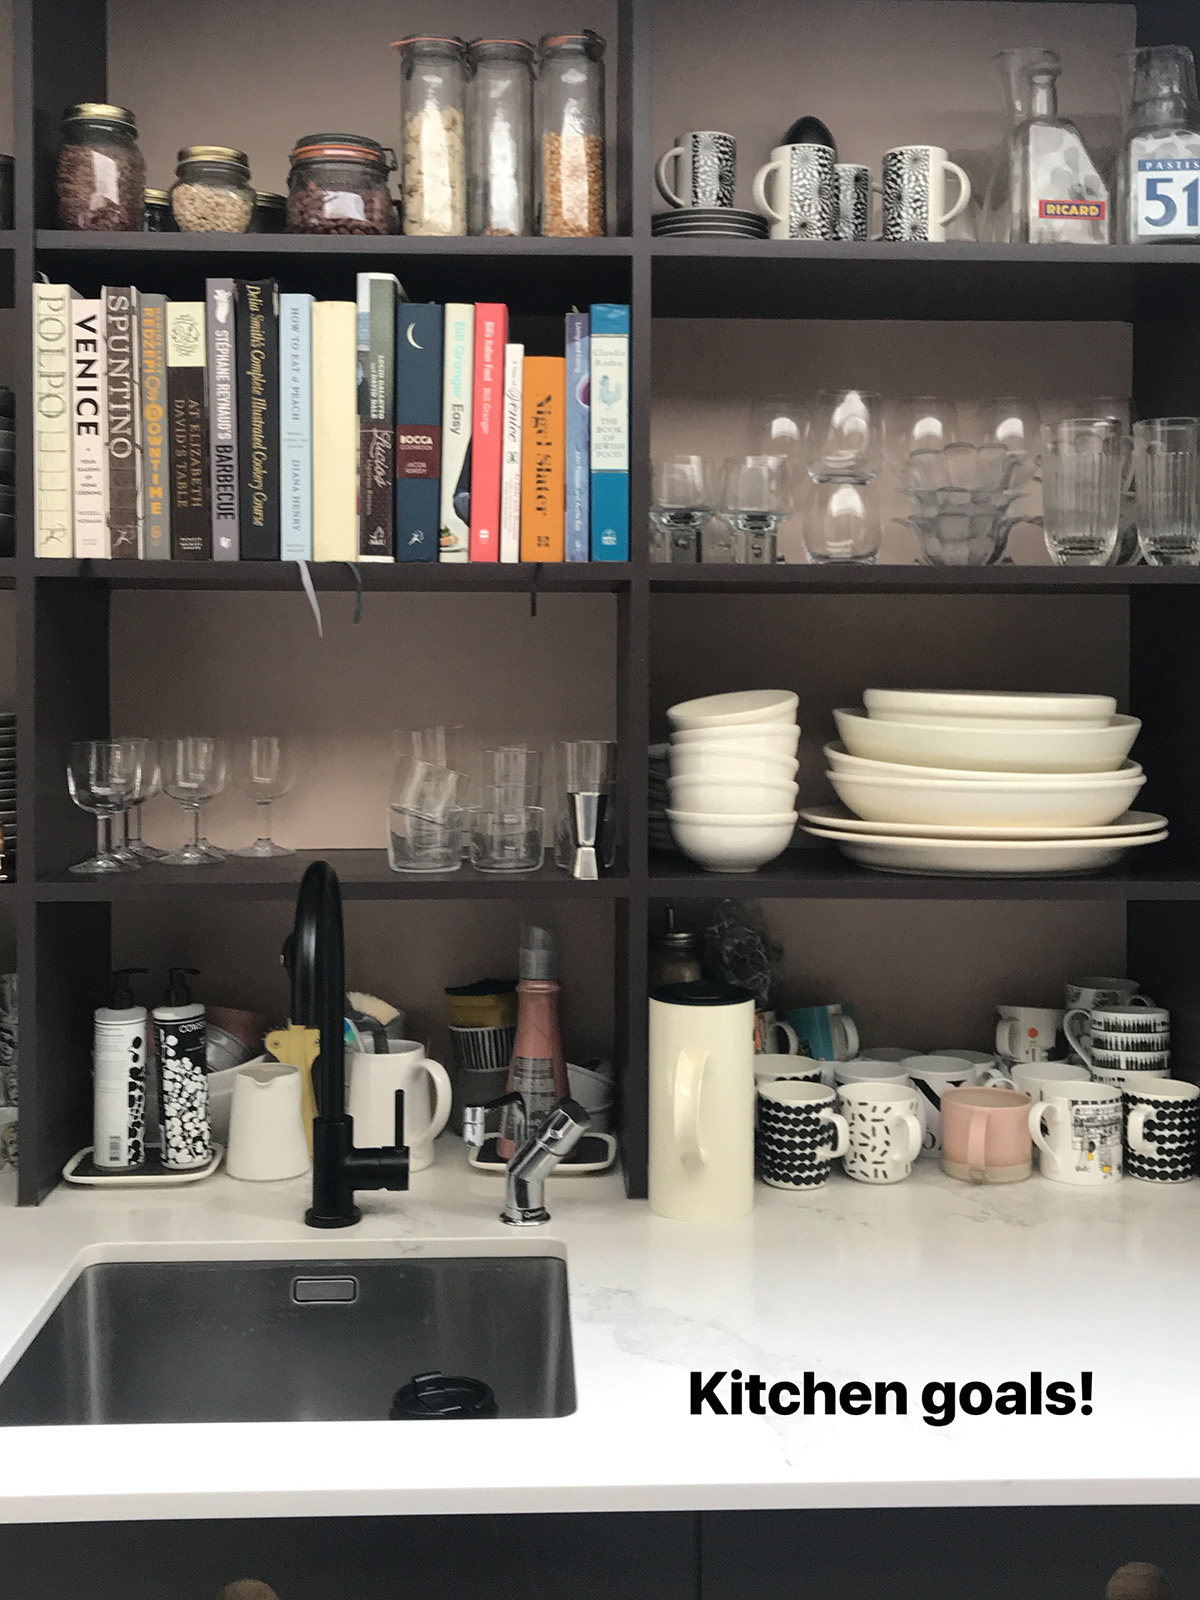 Interior Designers Sophie Robinson talks kitchen update with organised kitchen shelves above the sink